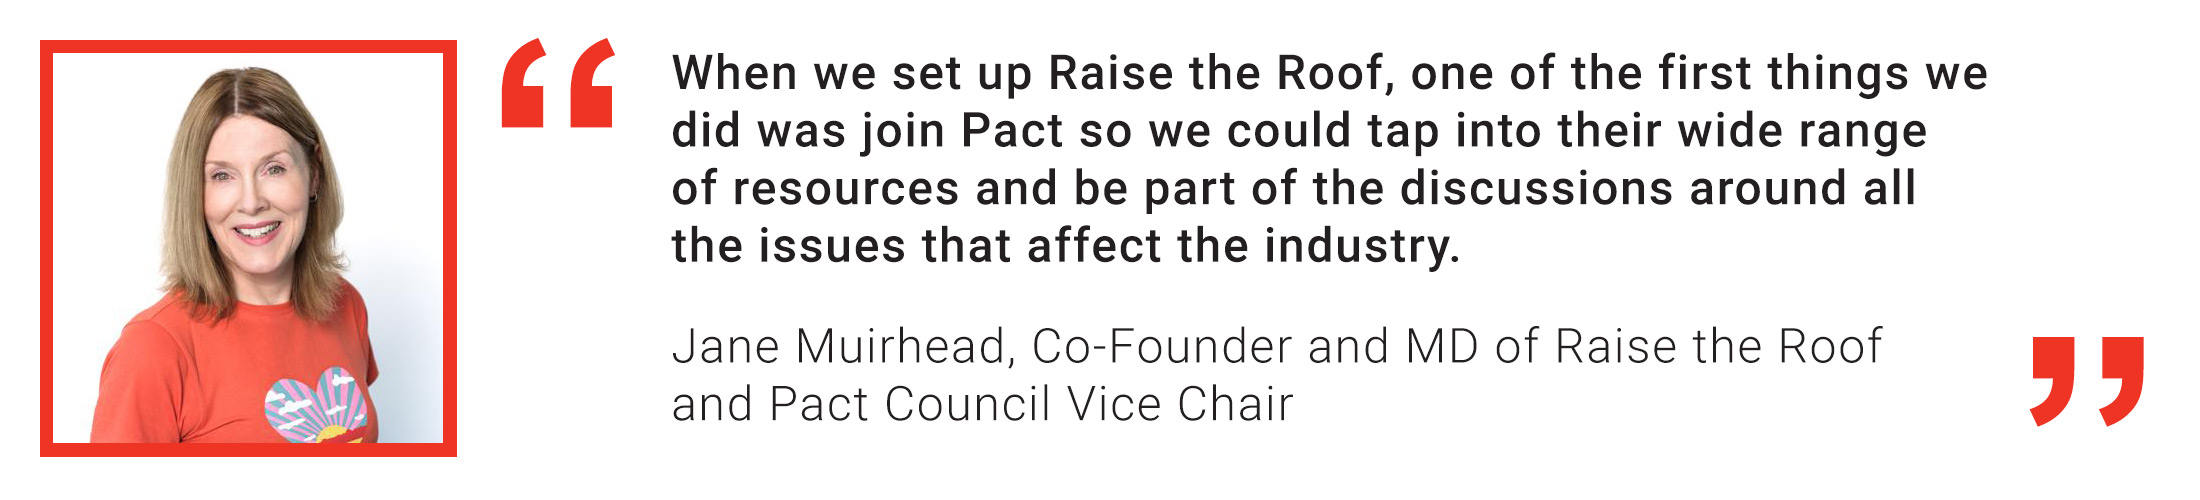 Member quote from Jane Muirhead of Raise the Roof Productions: When we set up Raise the Roof, one of the first things we did was join Pact so we could tap into their wide range of resources and be par